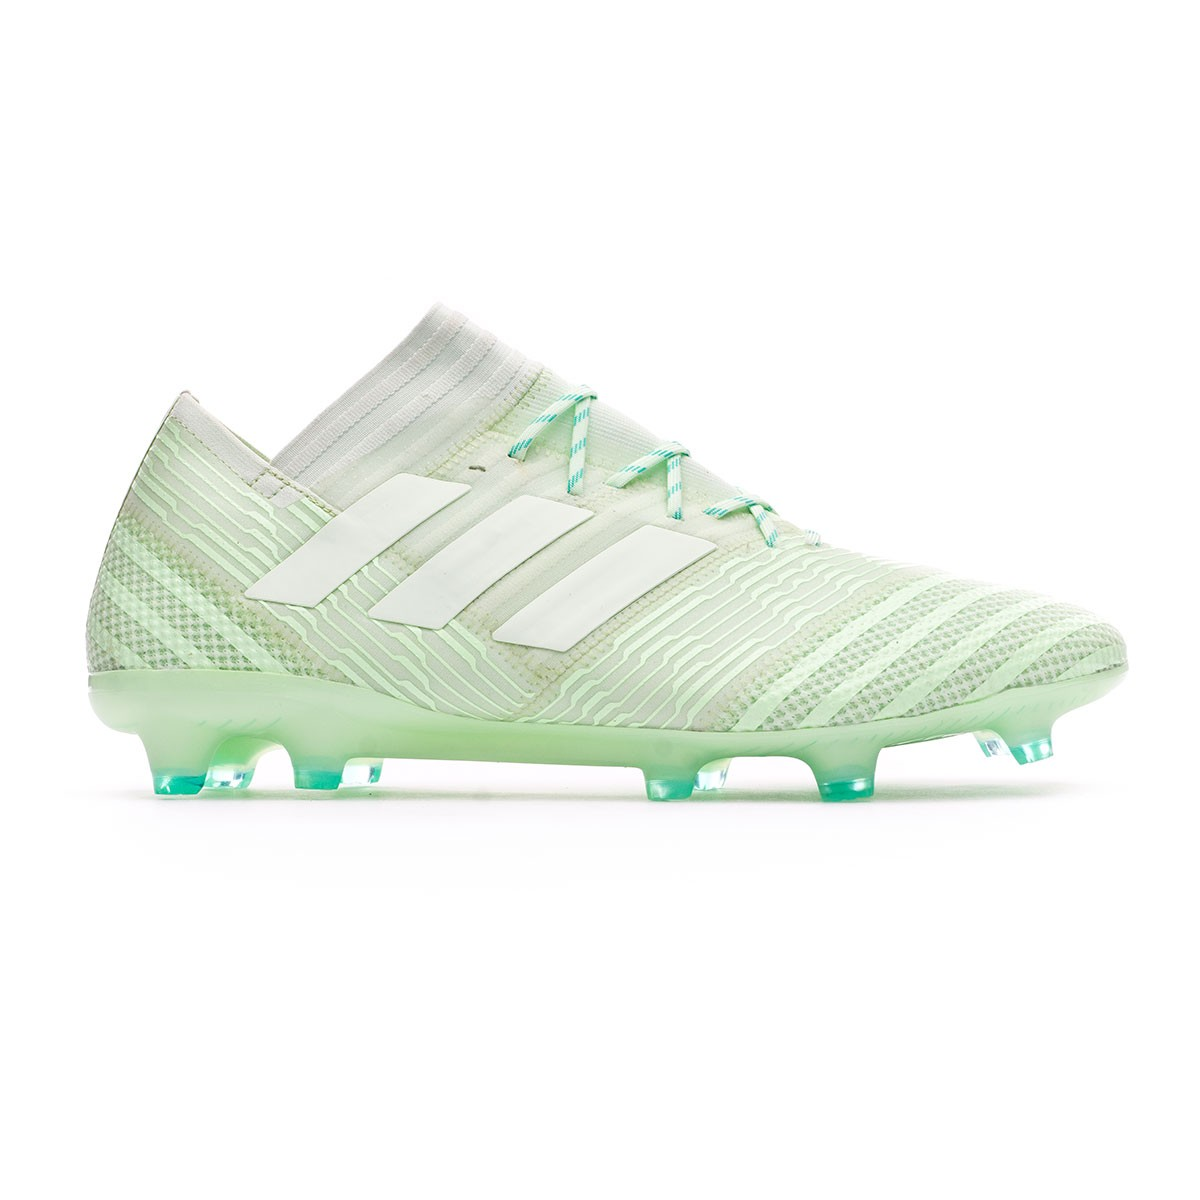 20b9de9937cd Football Boots adidas Nemeziz 17.1 FG Aero green-Hi-res green - Football  store Fútbol Emotion